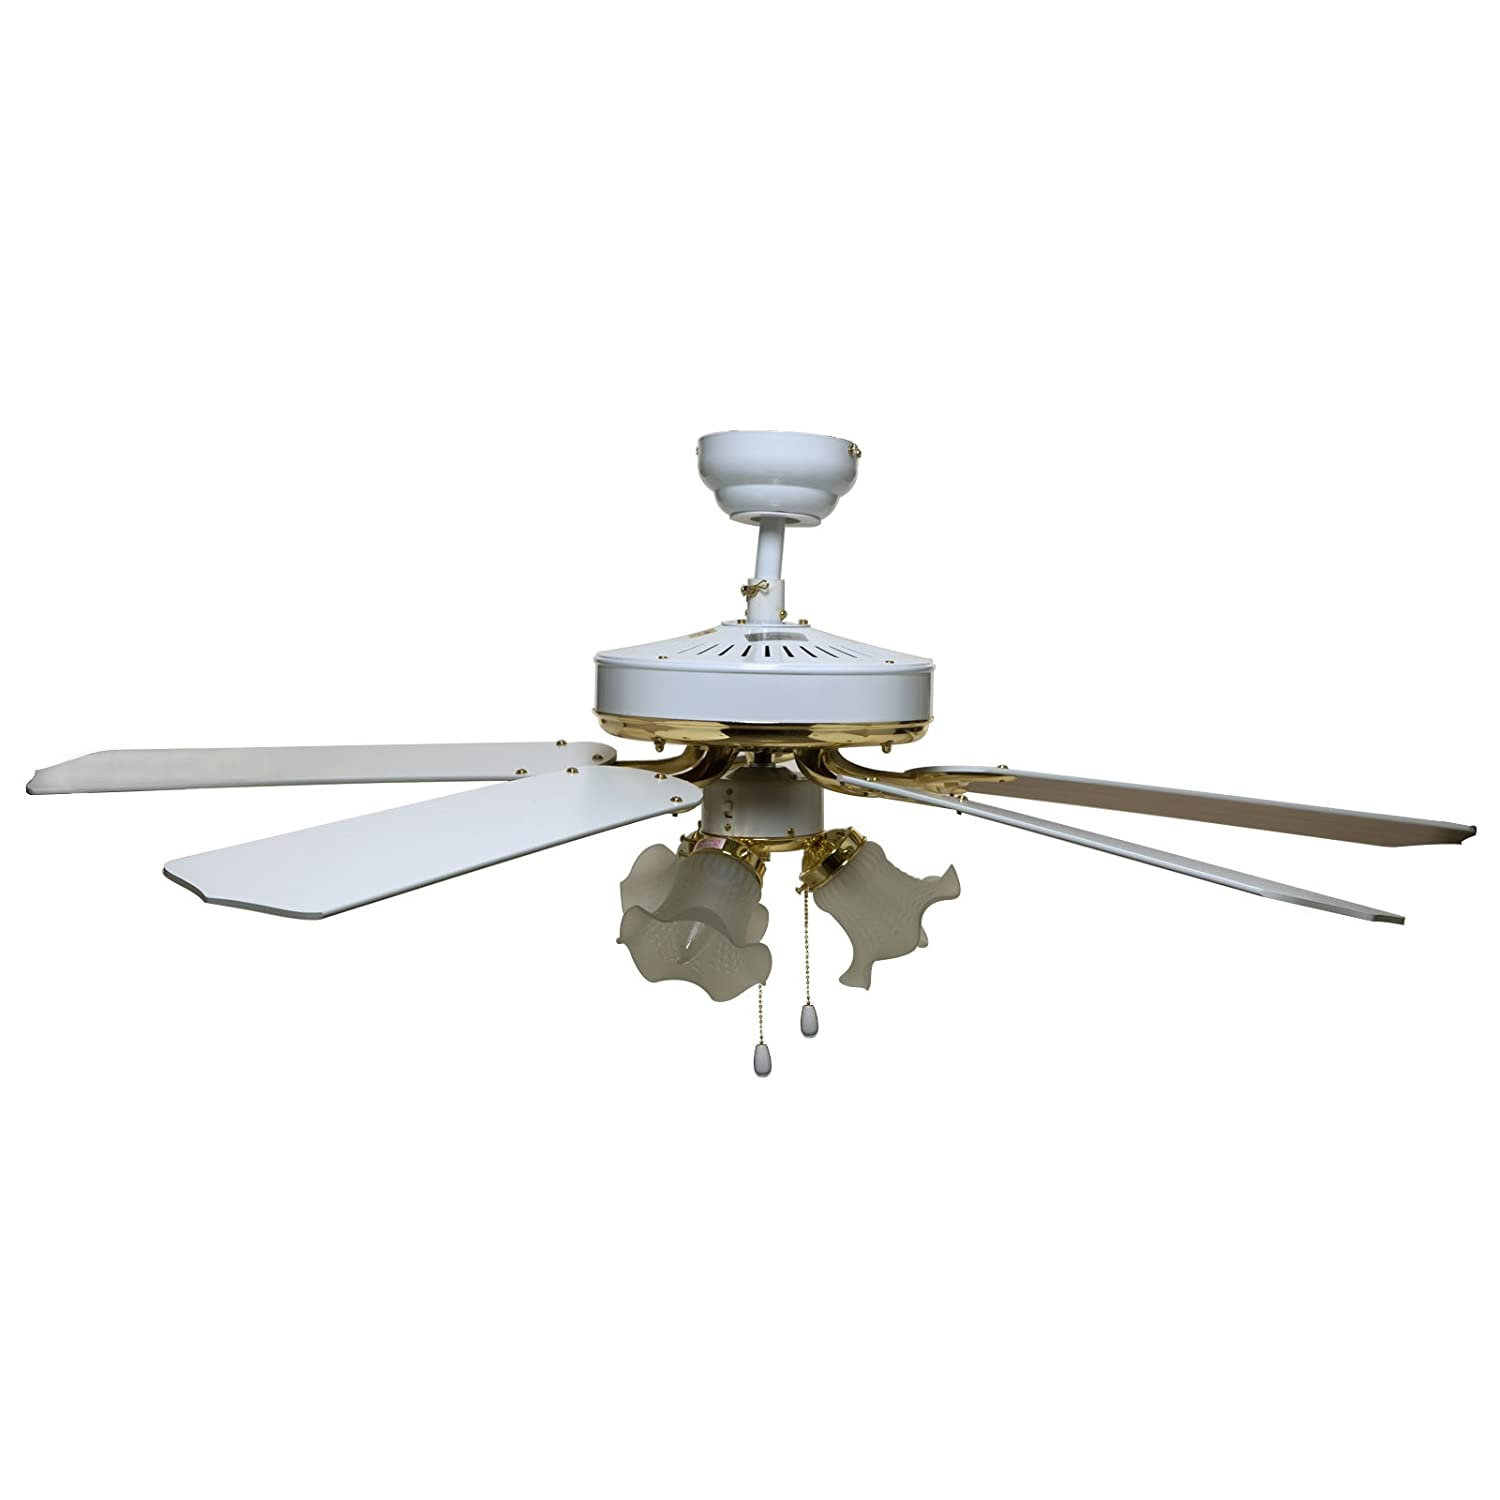 ceiling fan industrial fans gyrette brushed retro aire ideas head nickel of throughout dual full minka size inch plan in